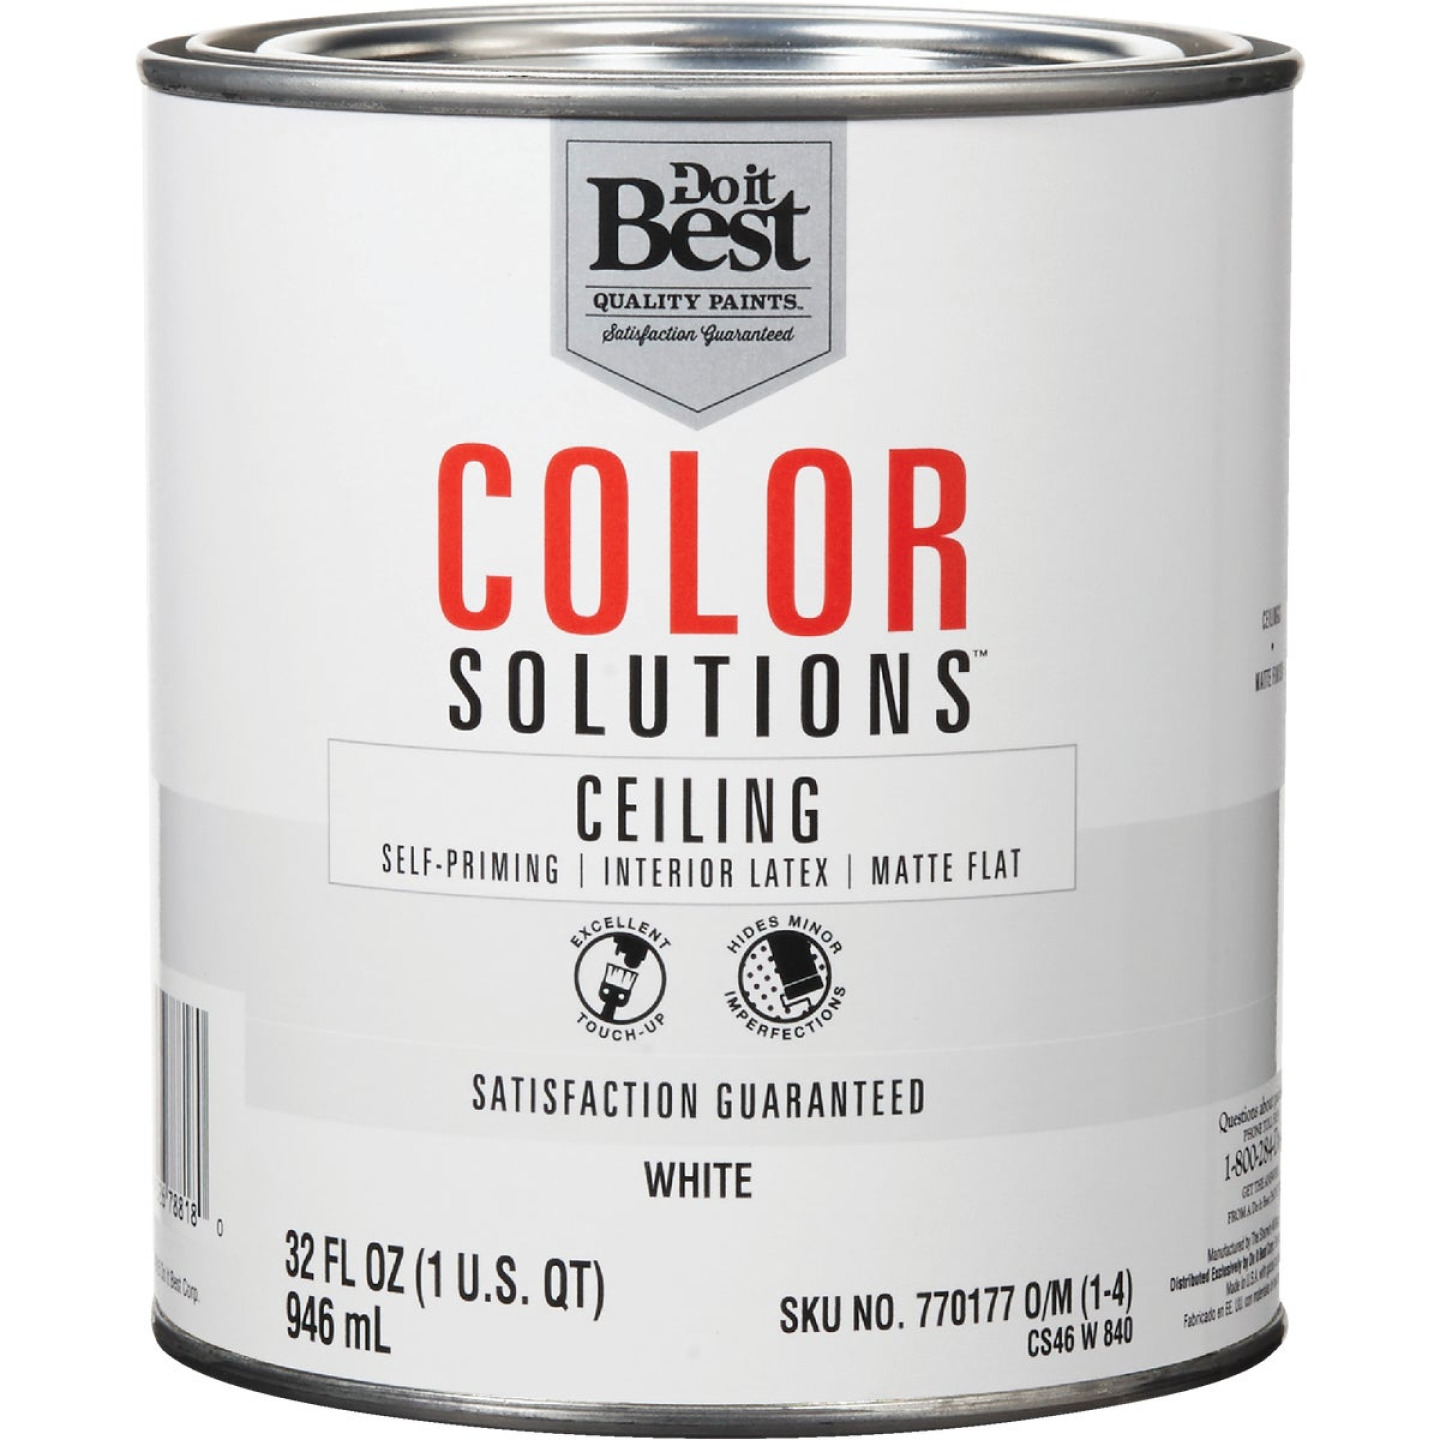 Do it Best Color Solutions Latex Self-Priming Flat Ceiling Paint, White, 1 Qt. Image 1